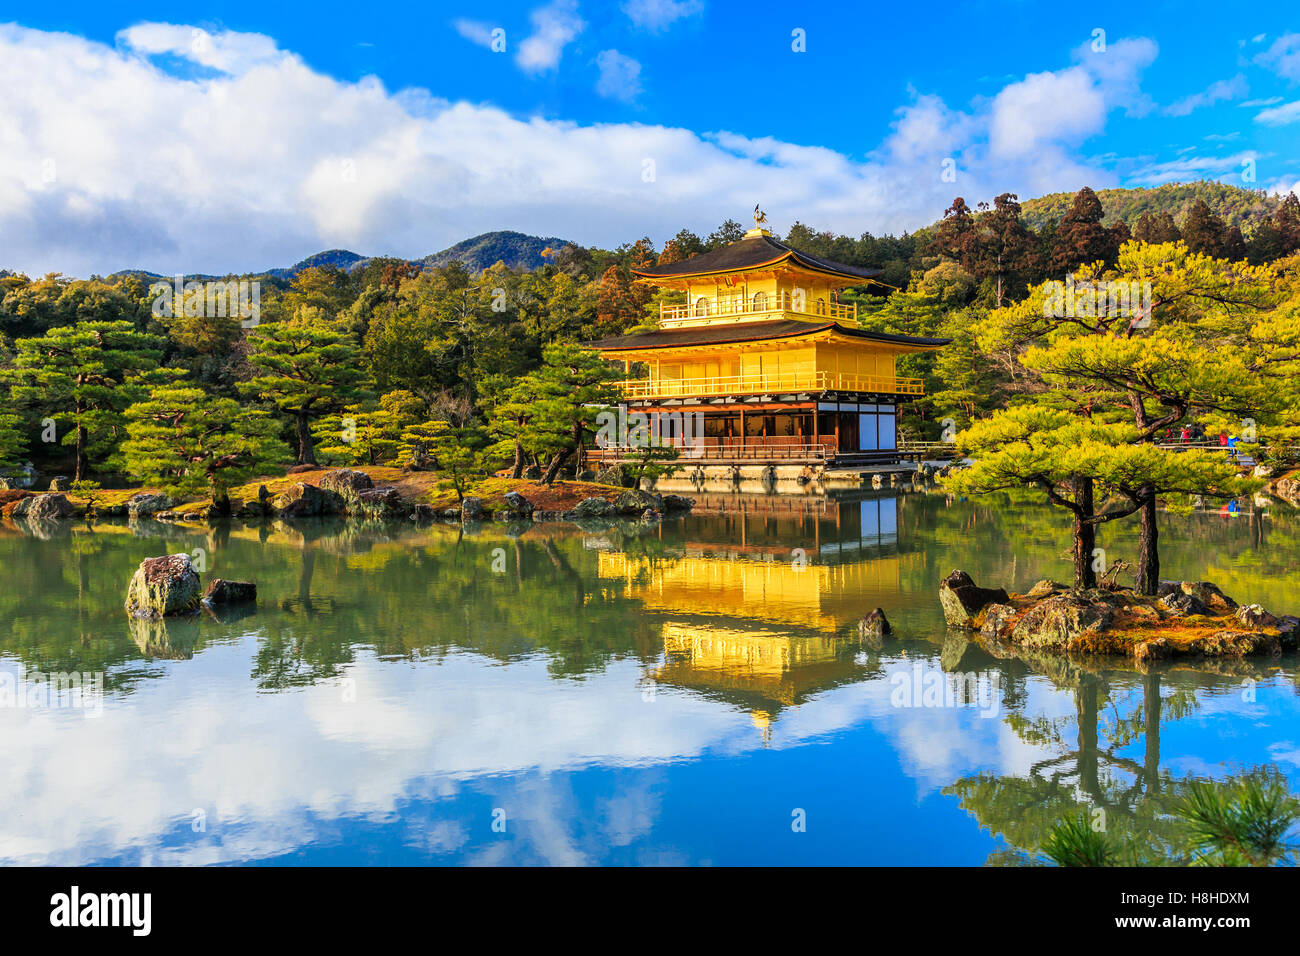 Kyoto, Japan. Golden Pavilion at Kinkakuji Temple. - Stock Image